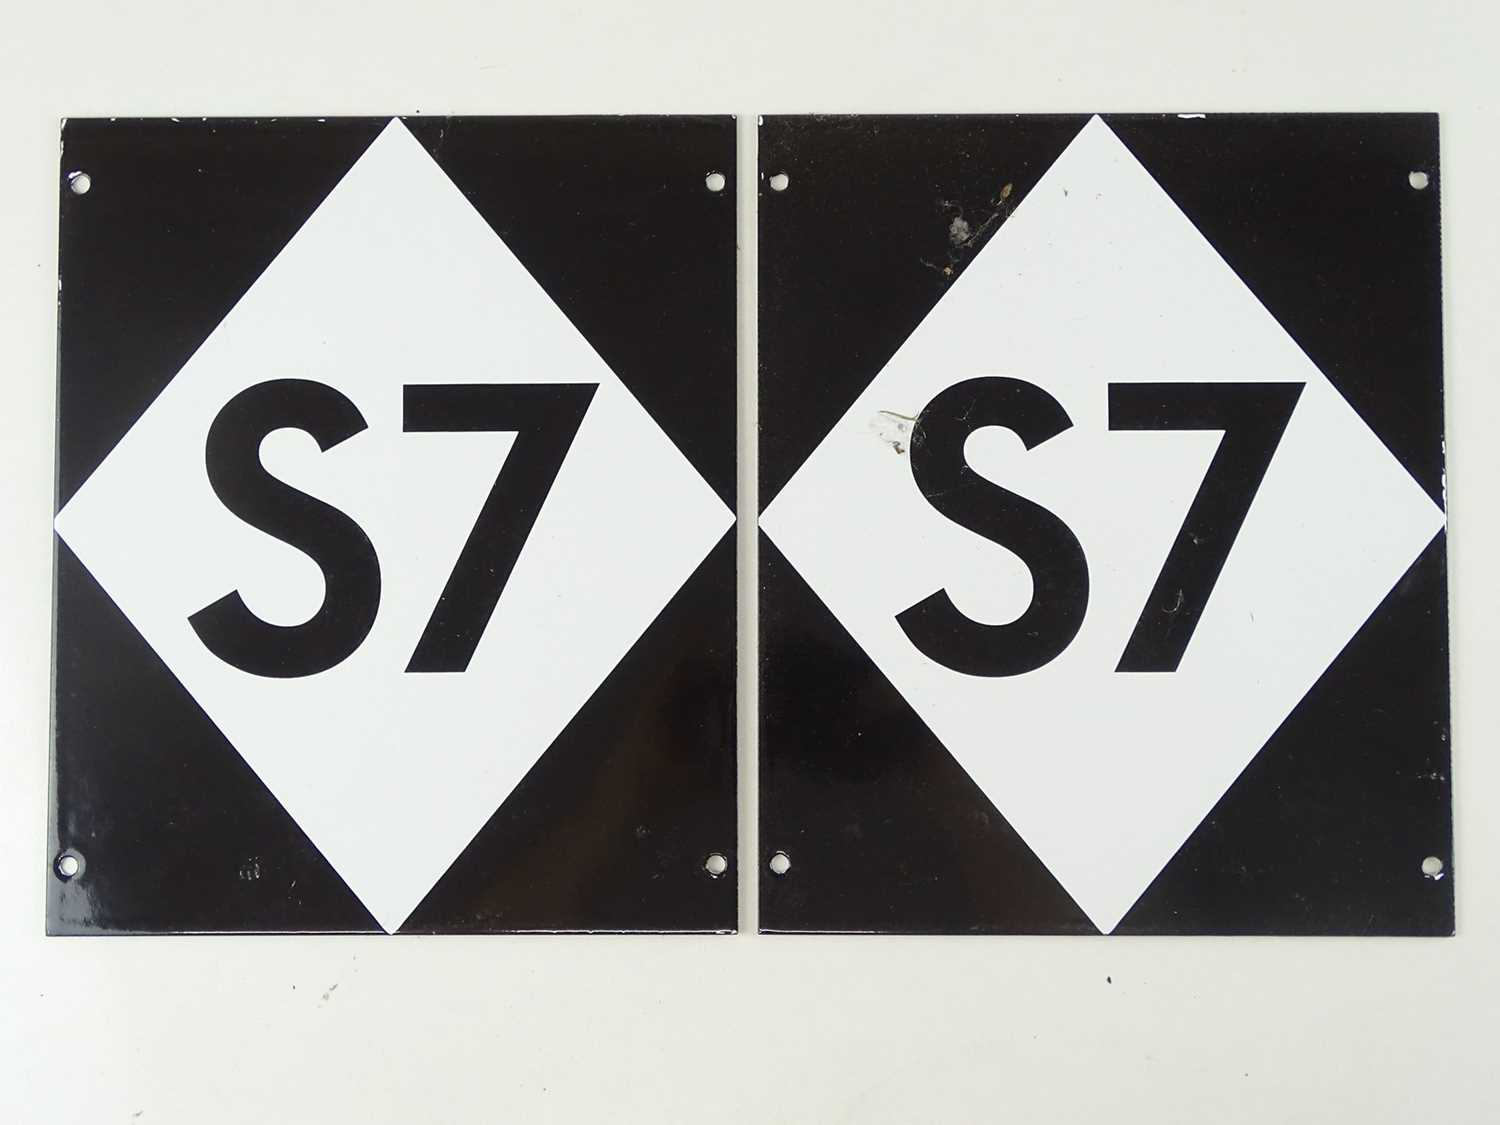 A pair of London Underground station platform stop signs for S7 series rolling stock (2)